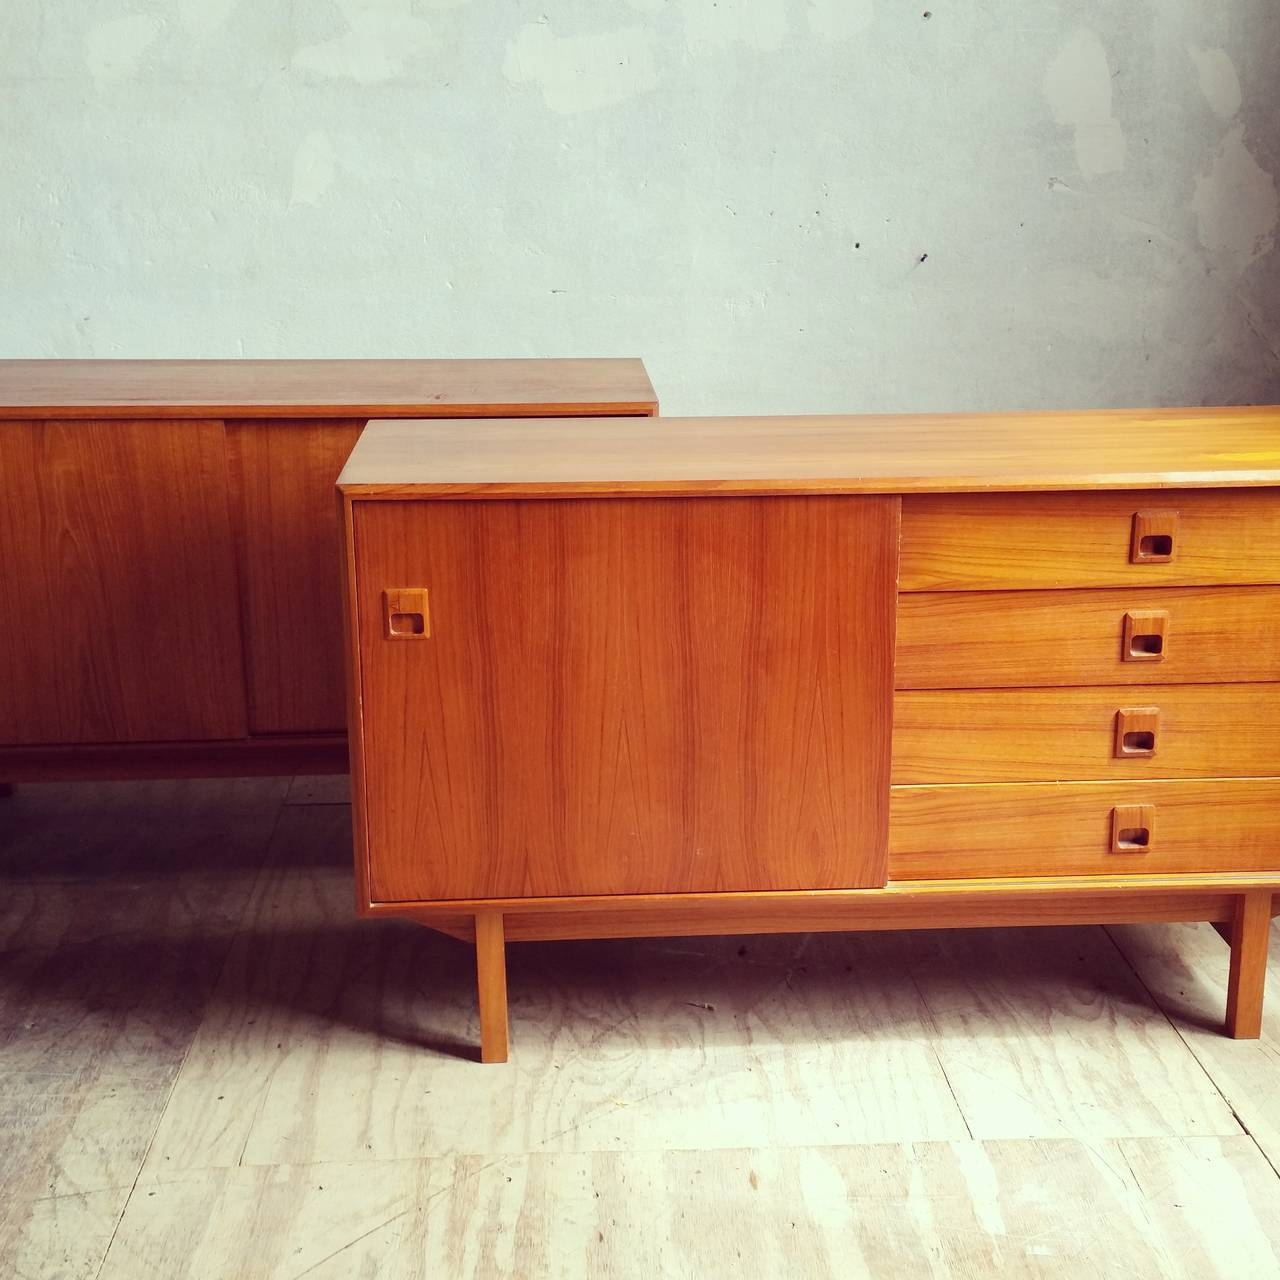 Matched Pair Of Danish Modern Teak Wood Credenzas Or Sideboards At With Most Recently Released Credenzas And Sideboards (View 14 of 15)